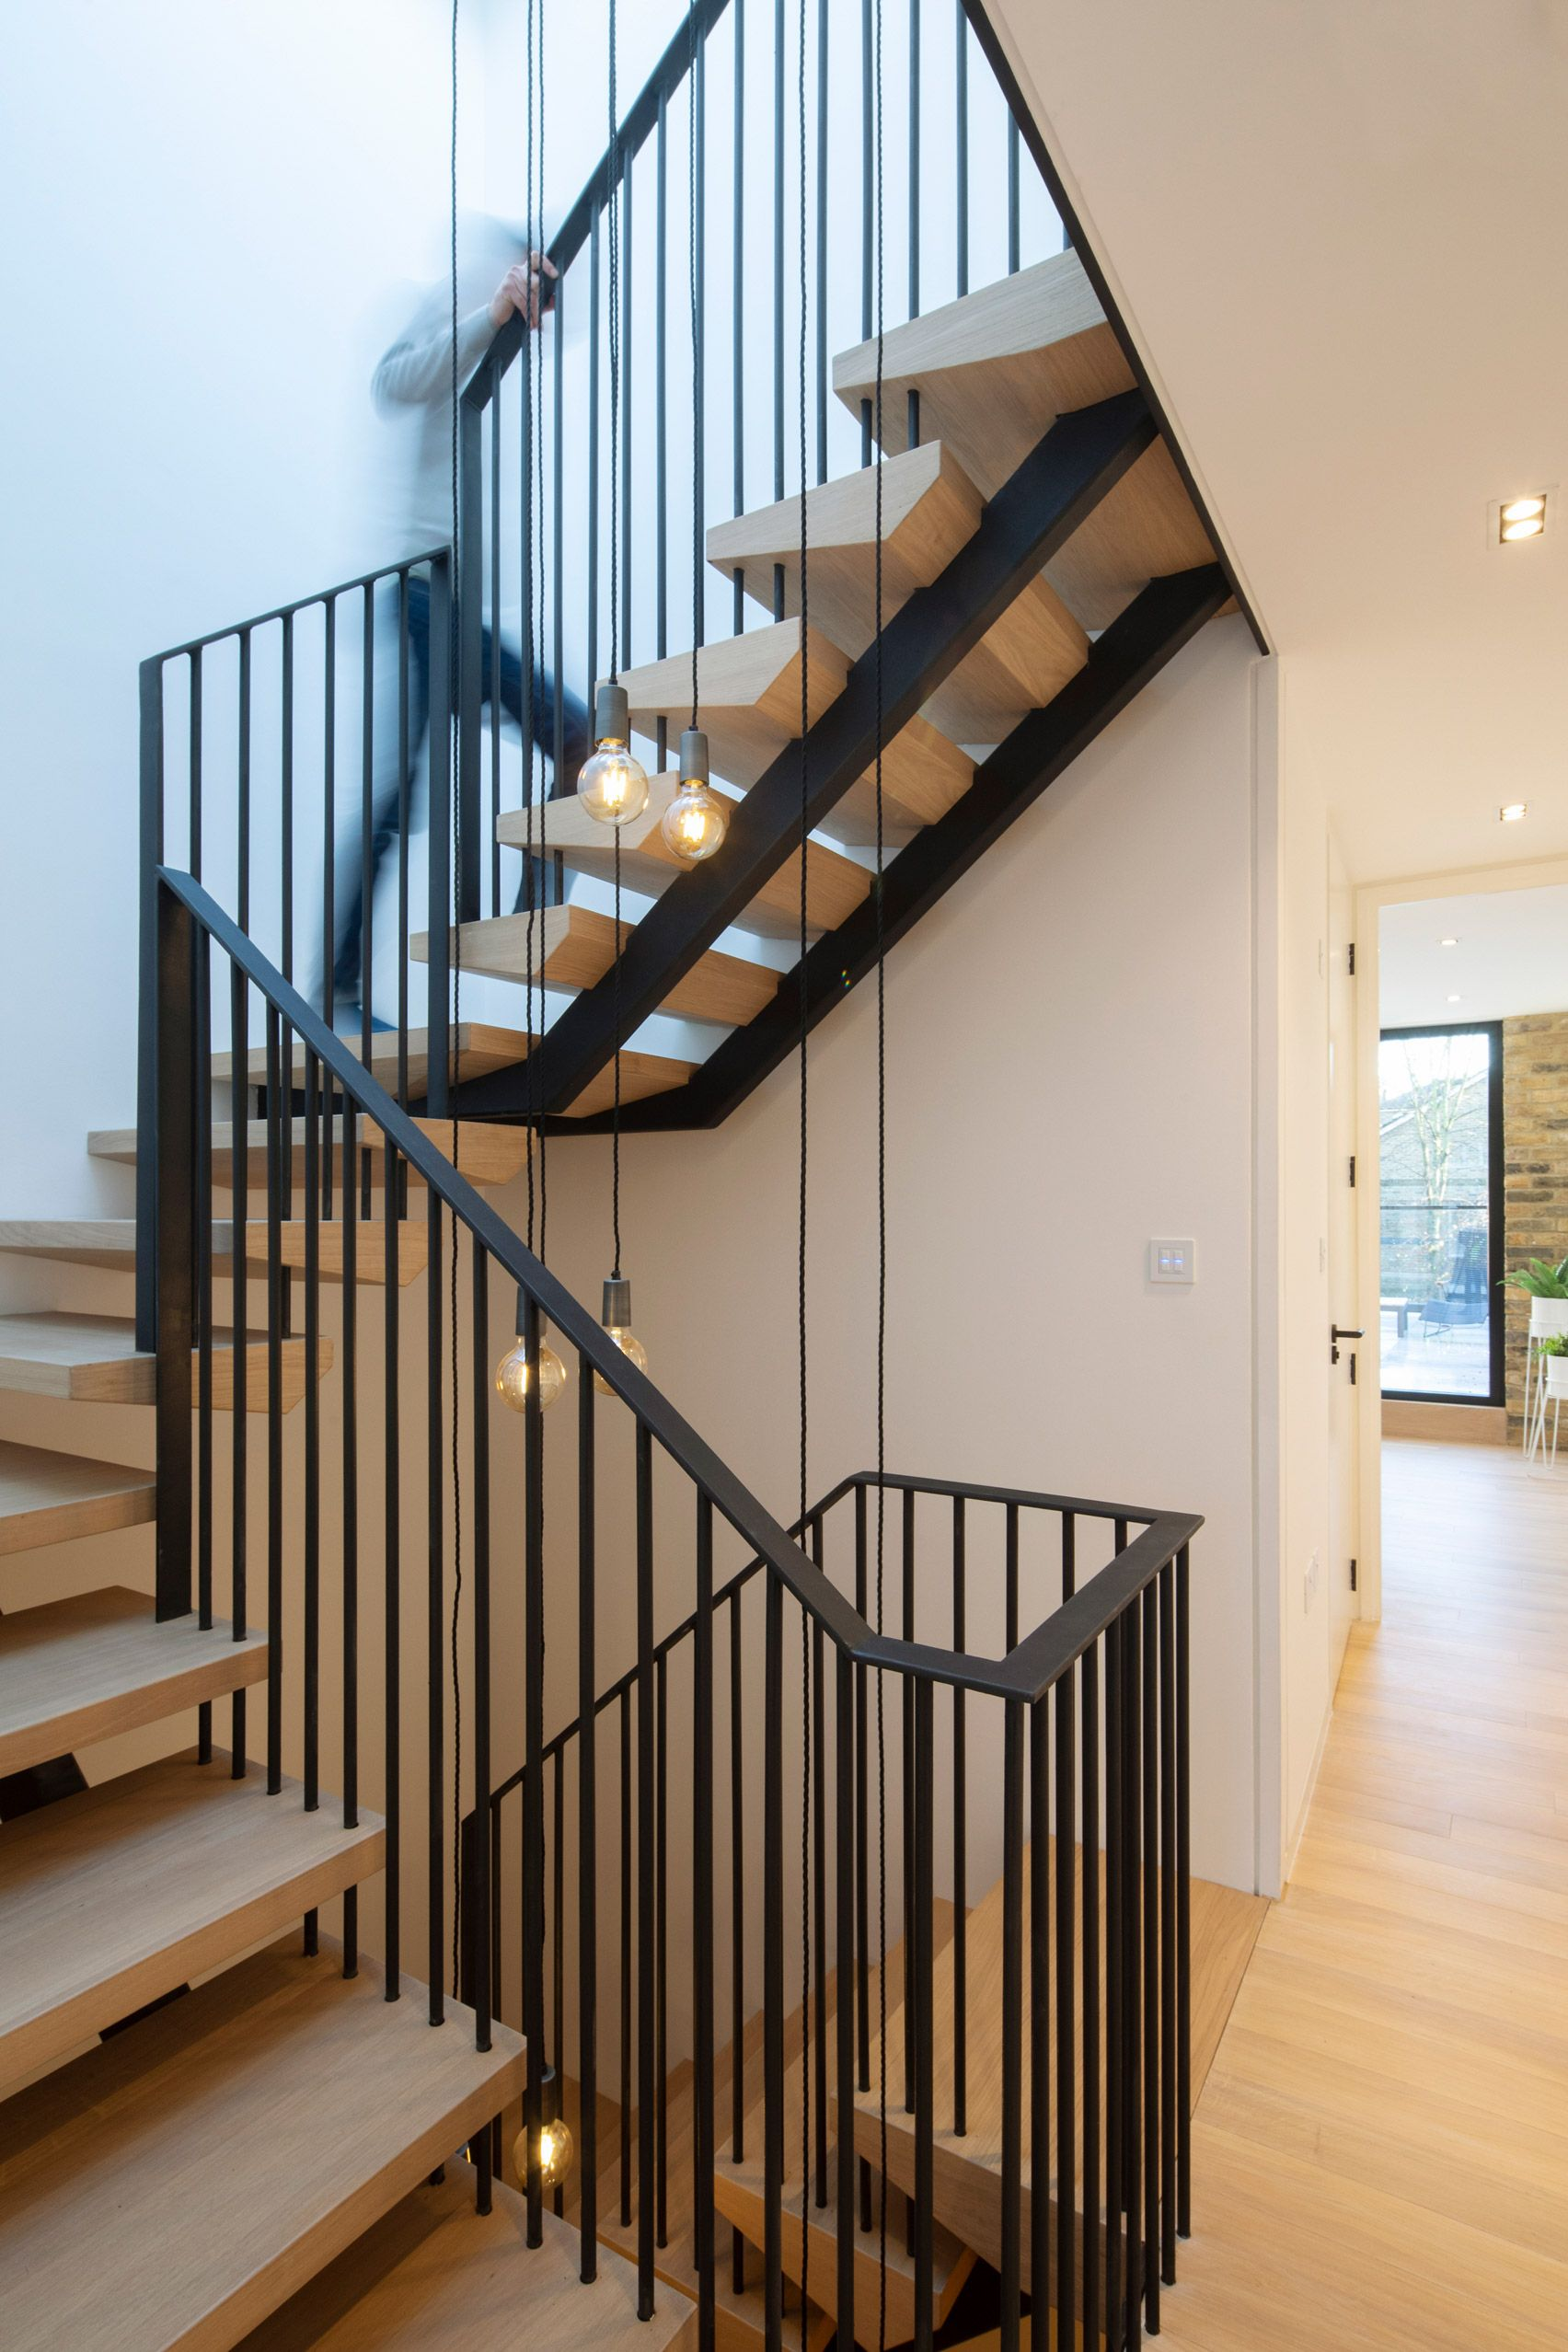 The three floors are connected through a staircase that forms a light well at the center of the house